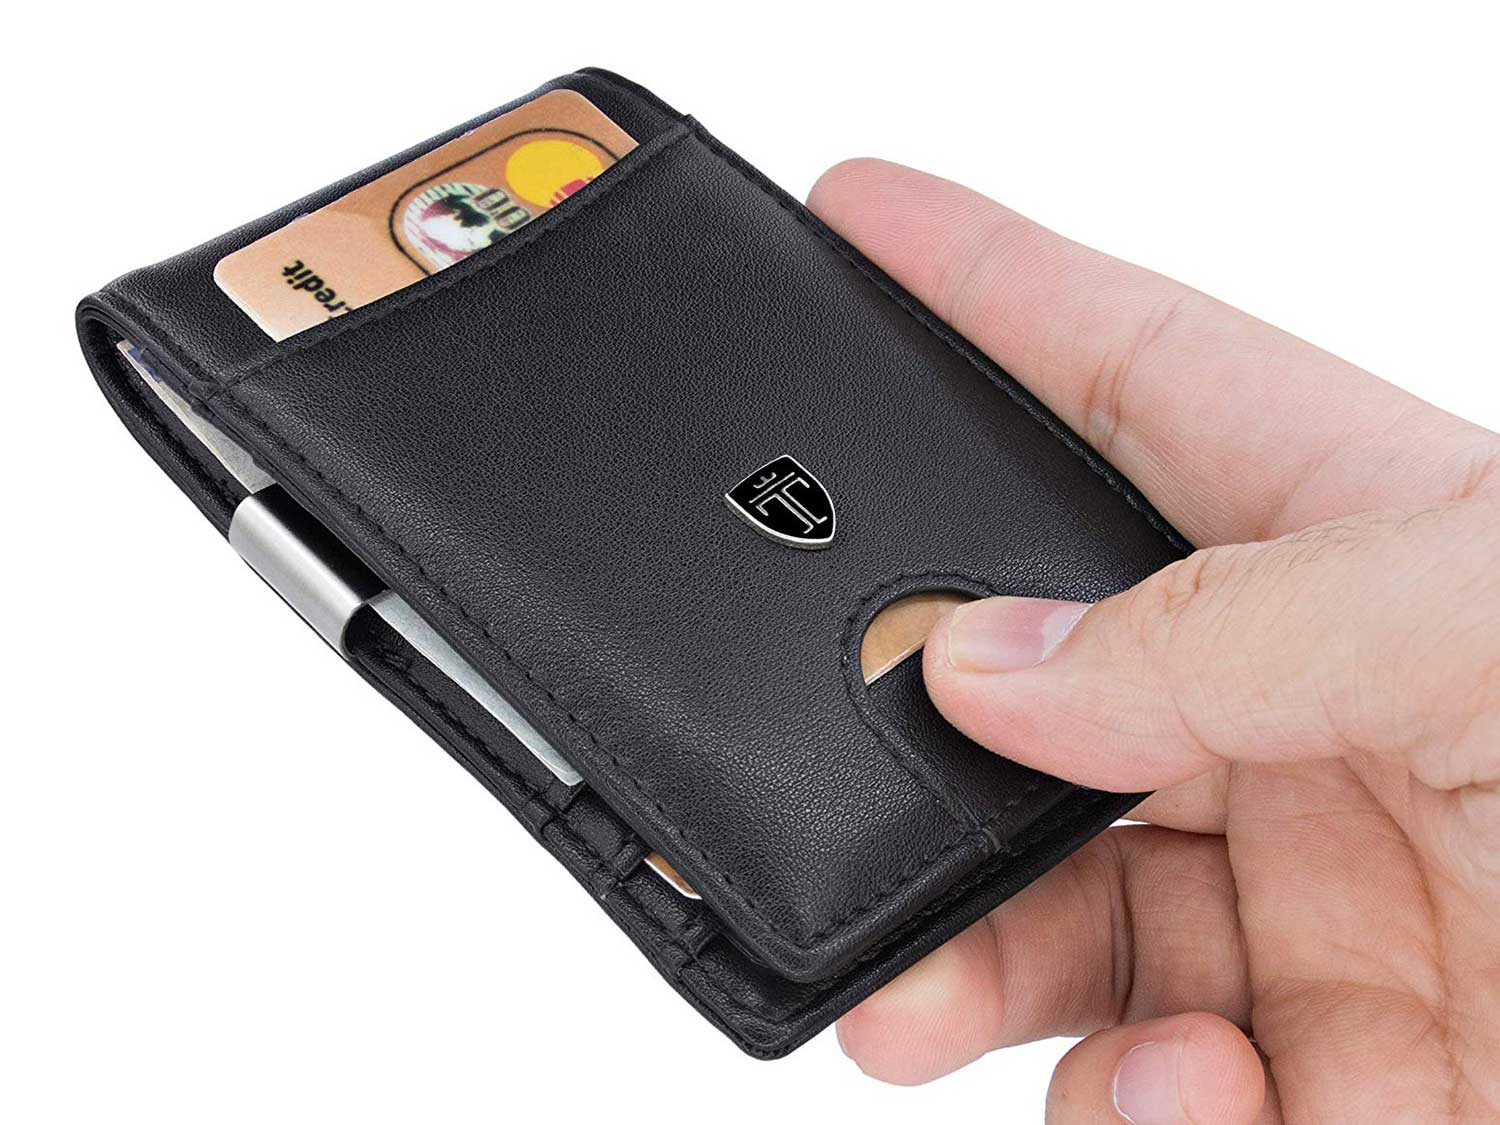 Holding an RFID-blocking wallet with credit card.